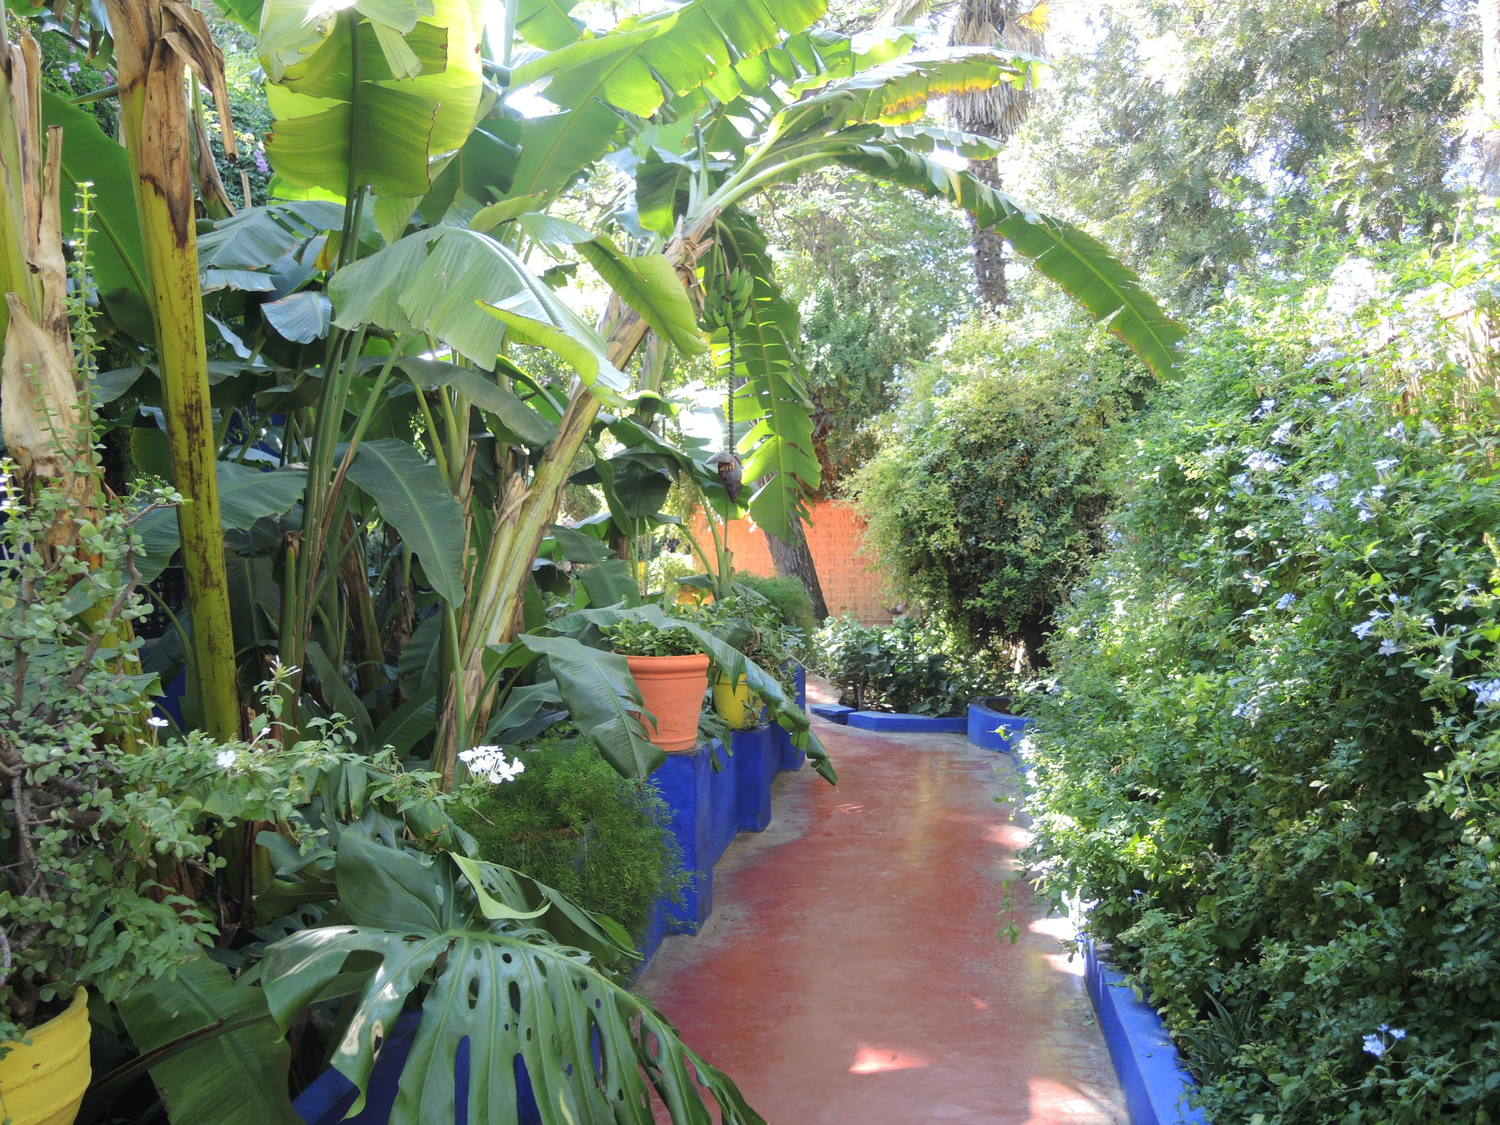 Greenery of Majorelle botanical garden in Marrakech